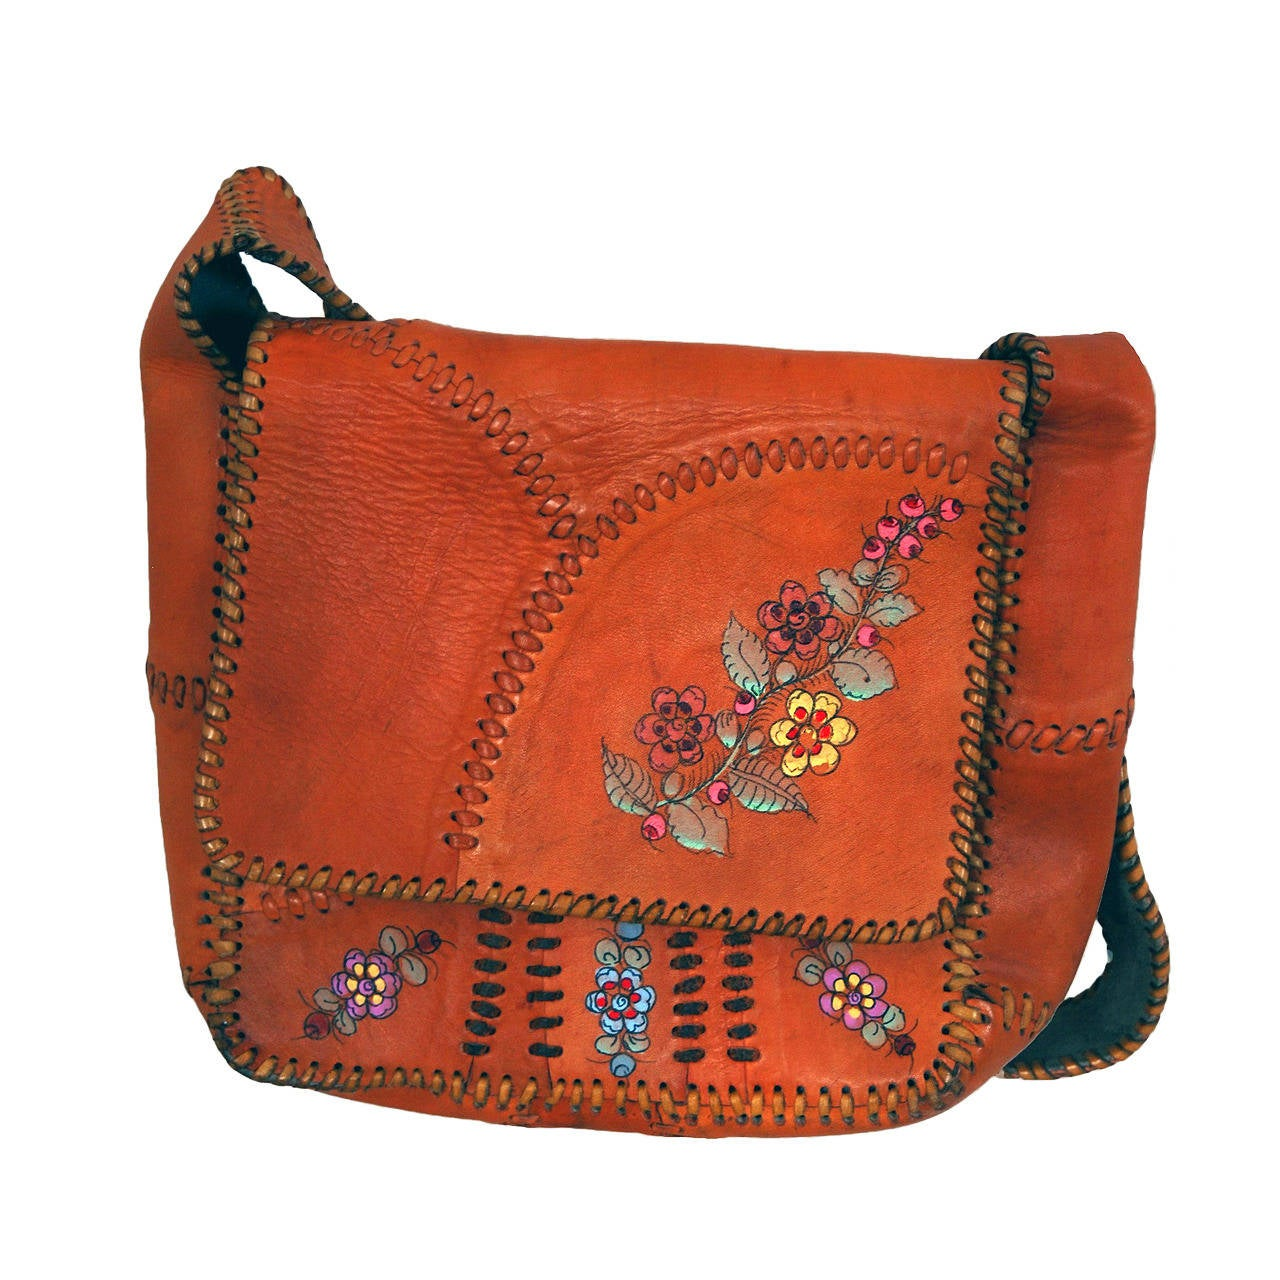 1970's Char Handpainted Whipstitched Leather Bohemian Hippie Messanger Bag Purse 1